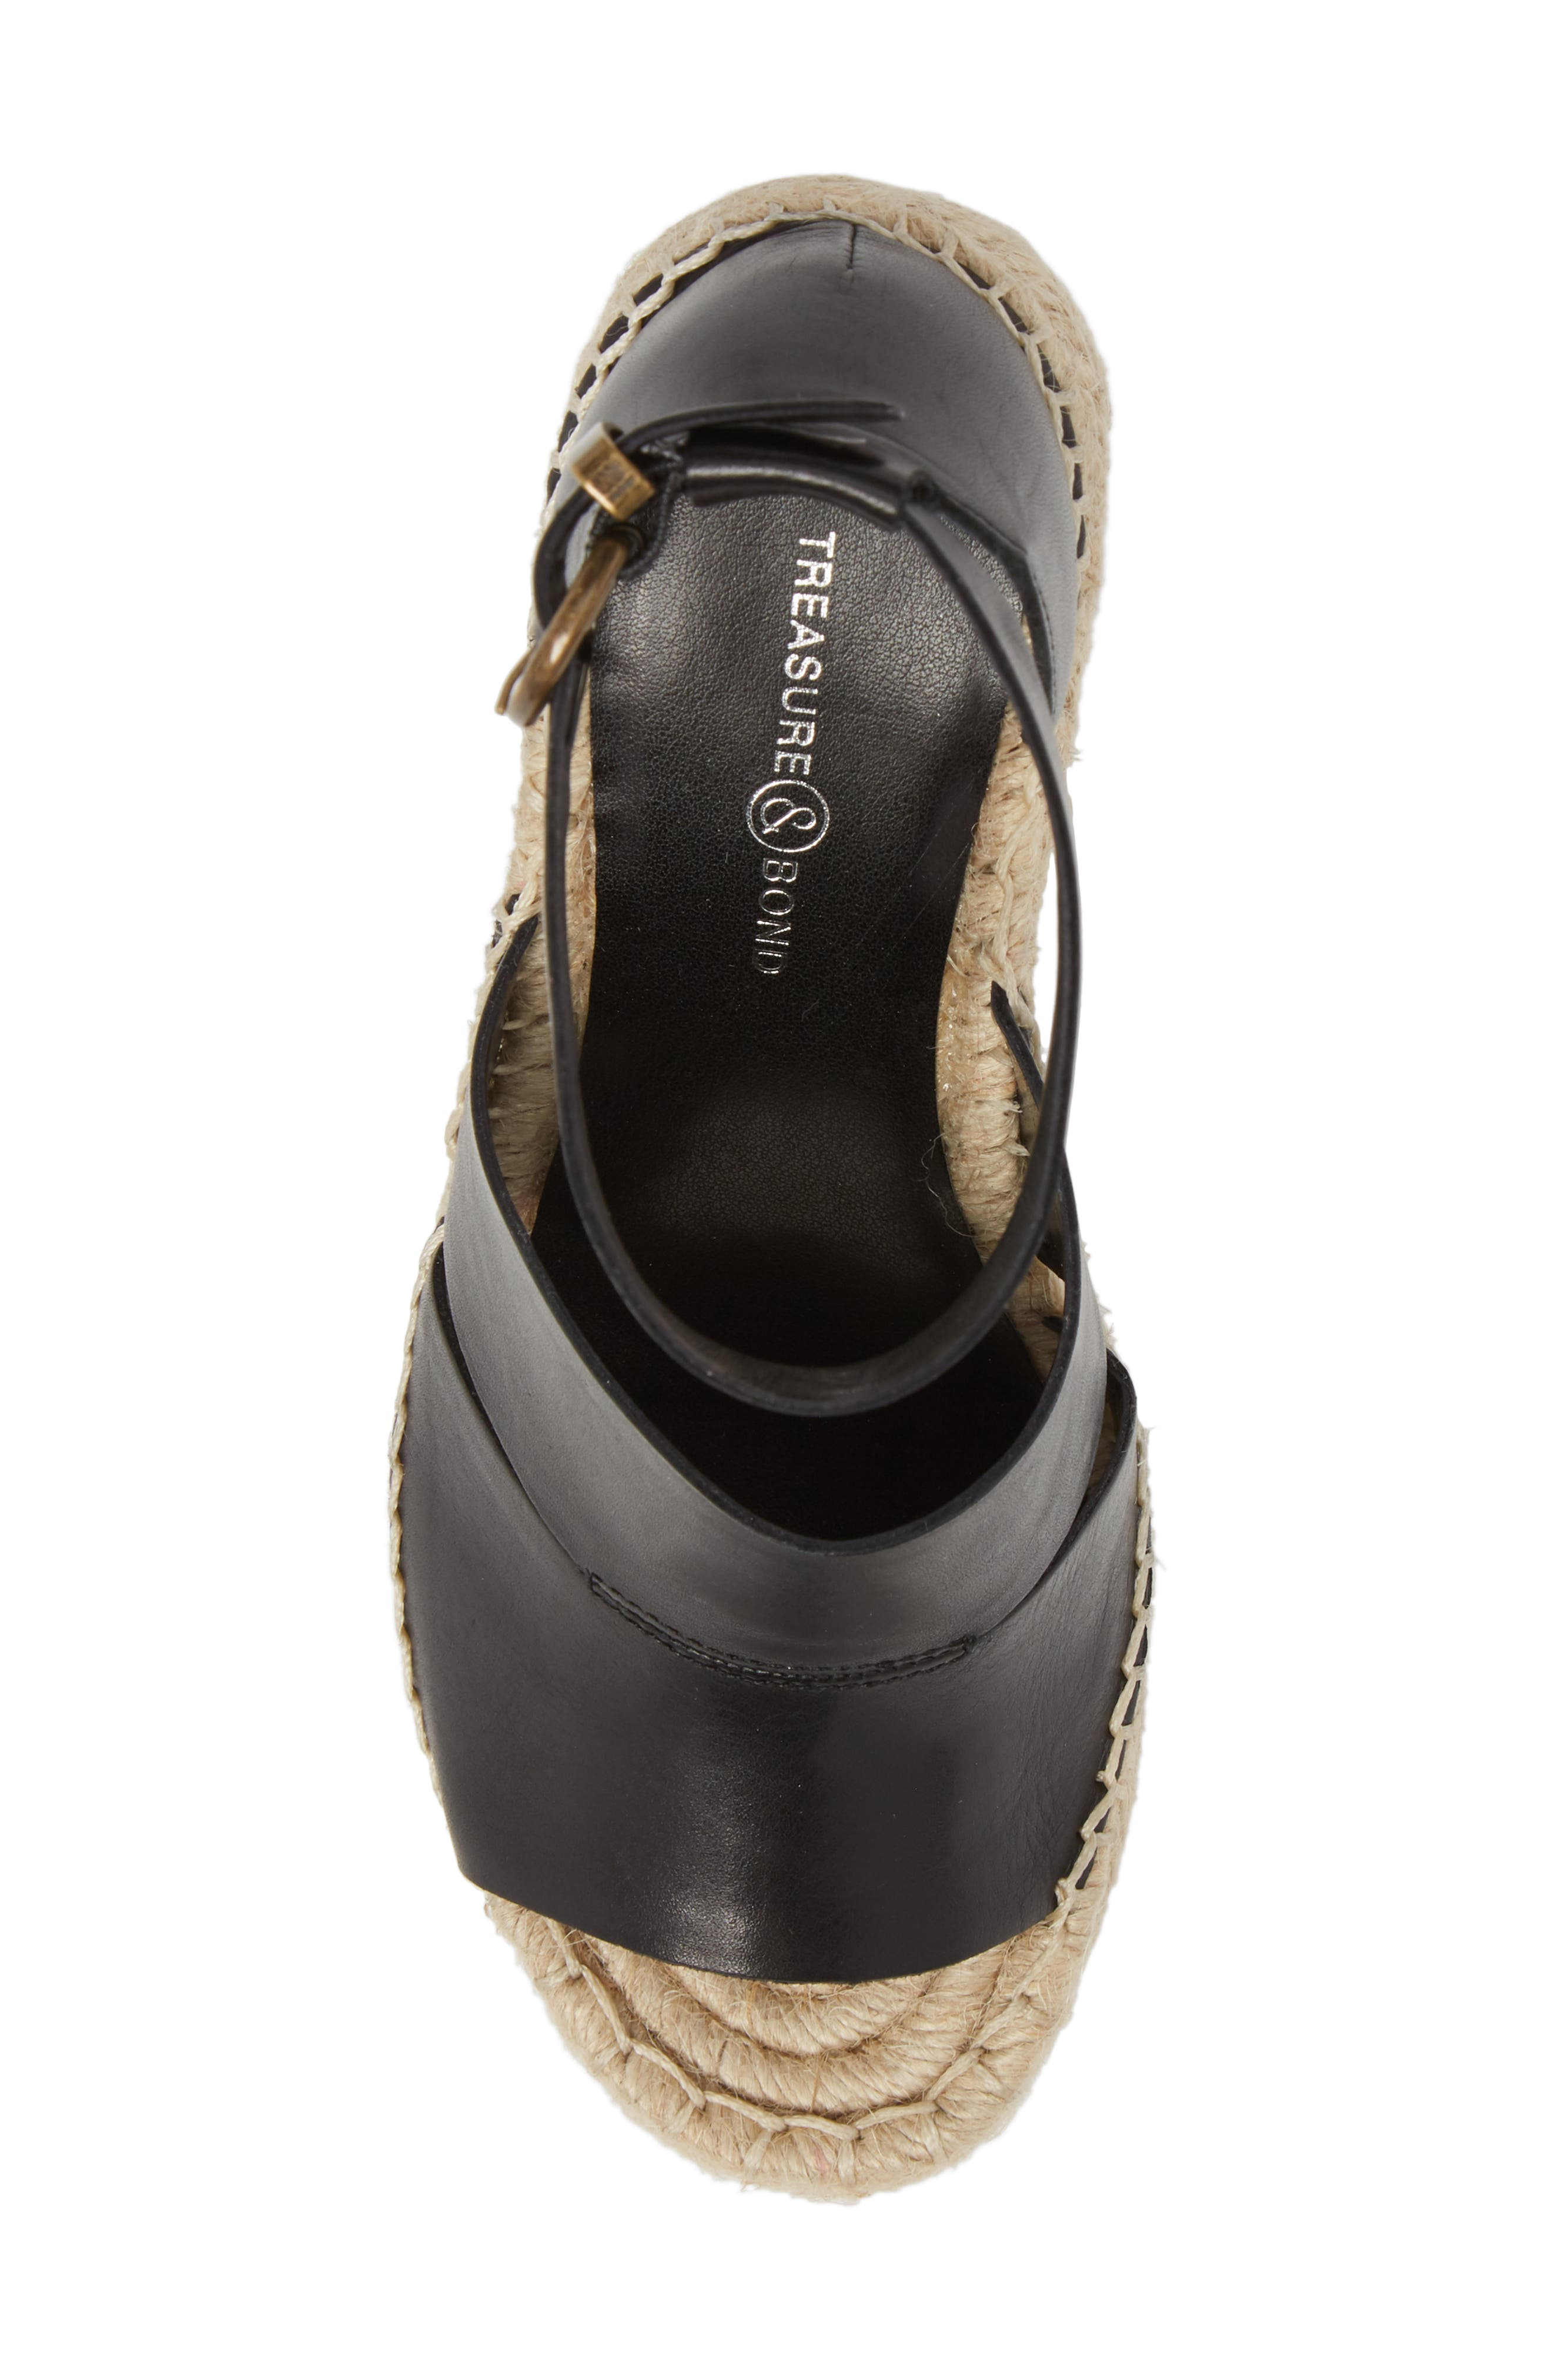 Sannibel Platform Wedge Sandal,                             Alternate thumbnail 5, color,                             BLACK LEATHER